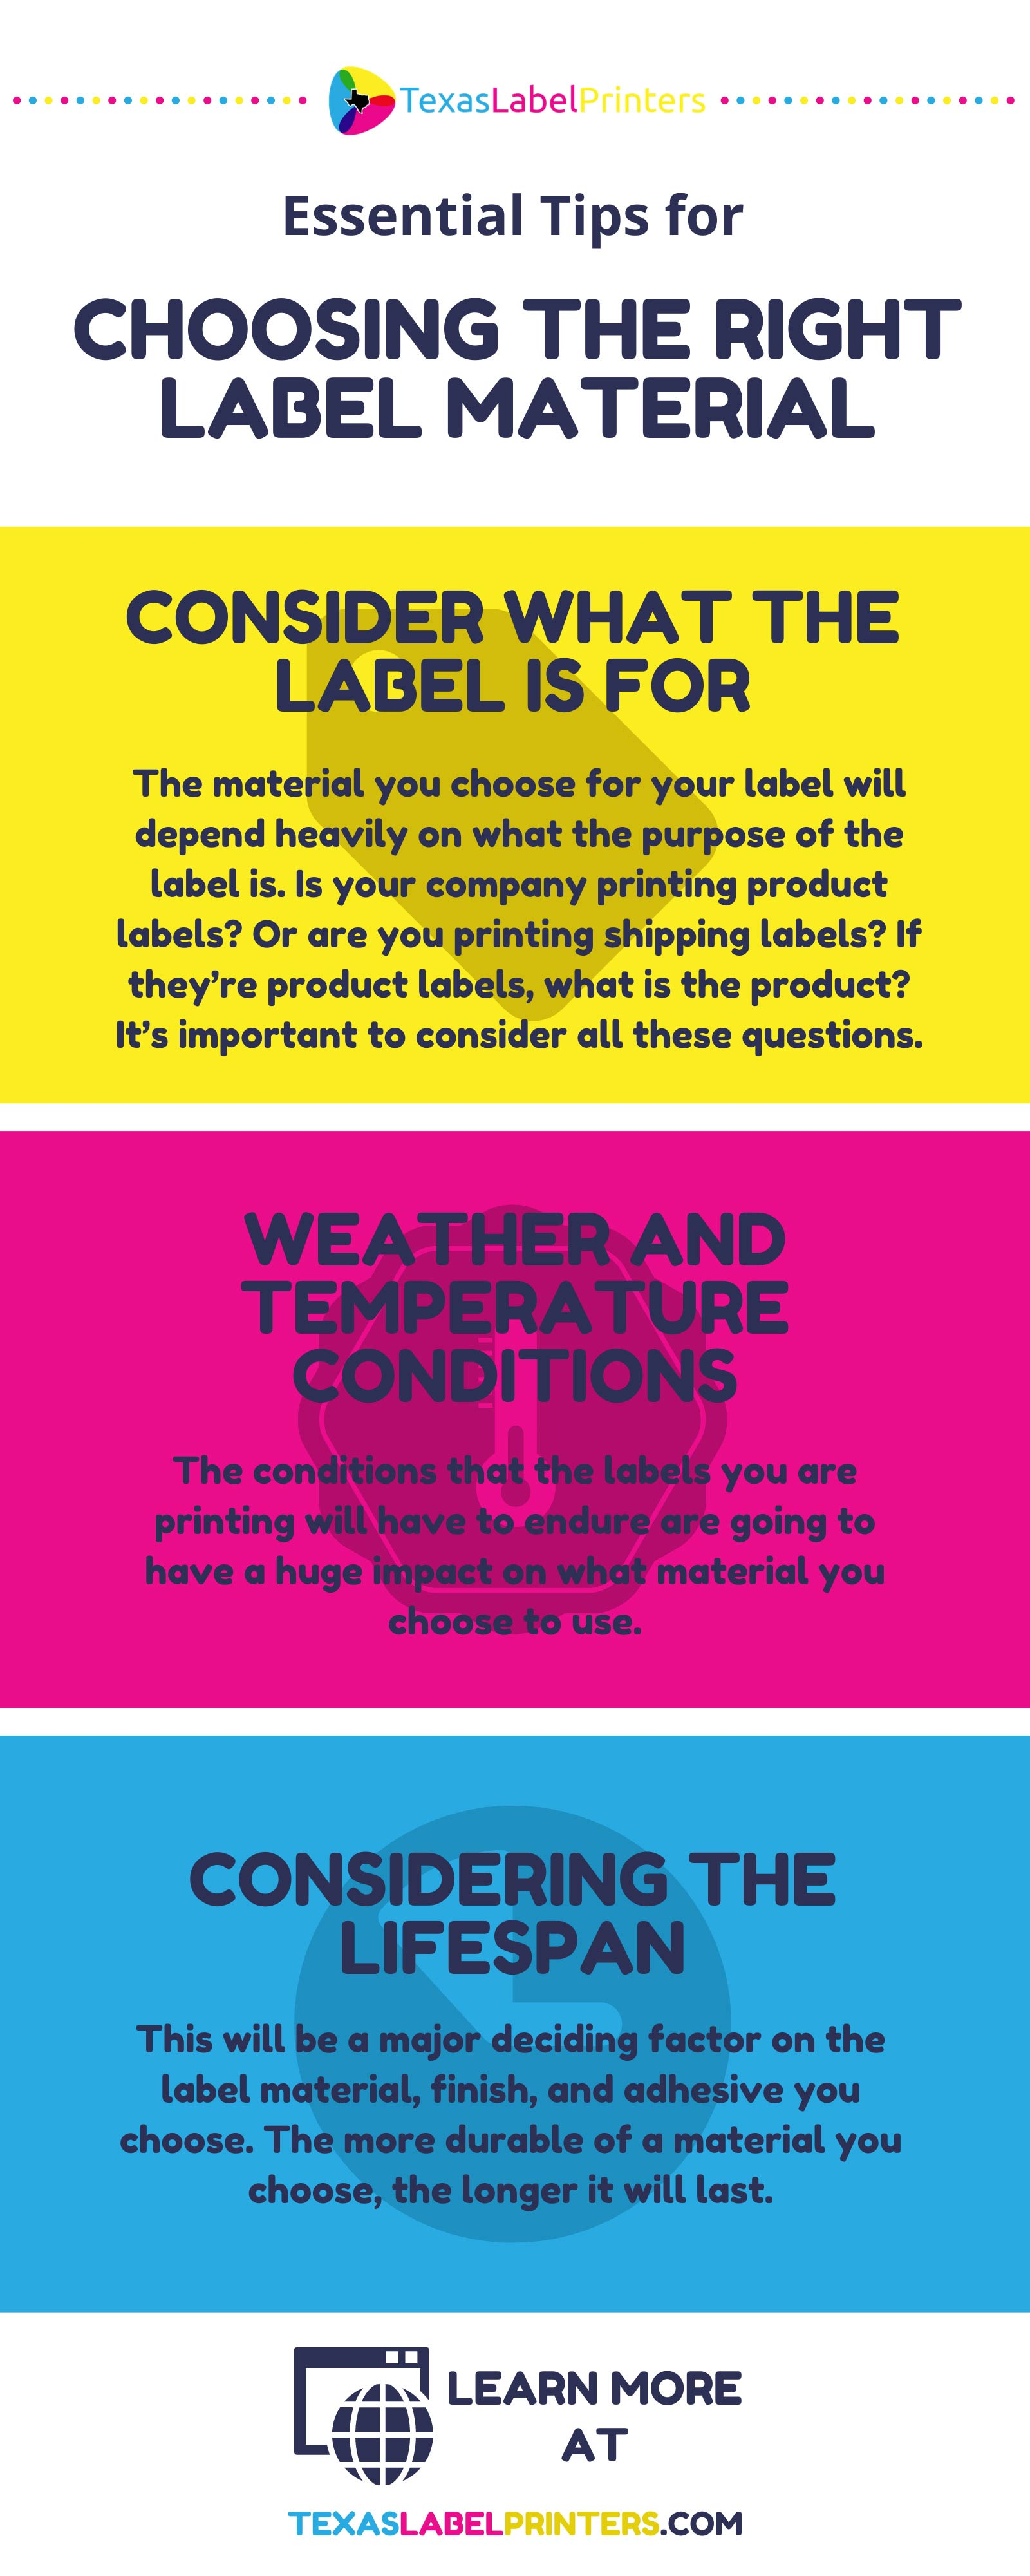 Essential Tips for Choosing the Right Label Material Infographic